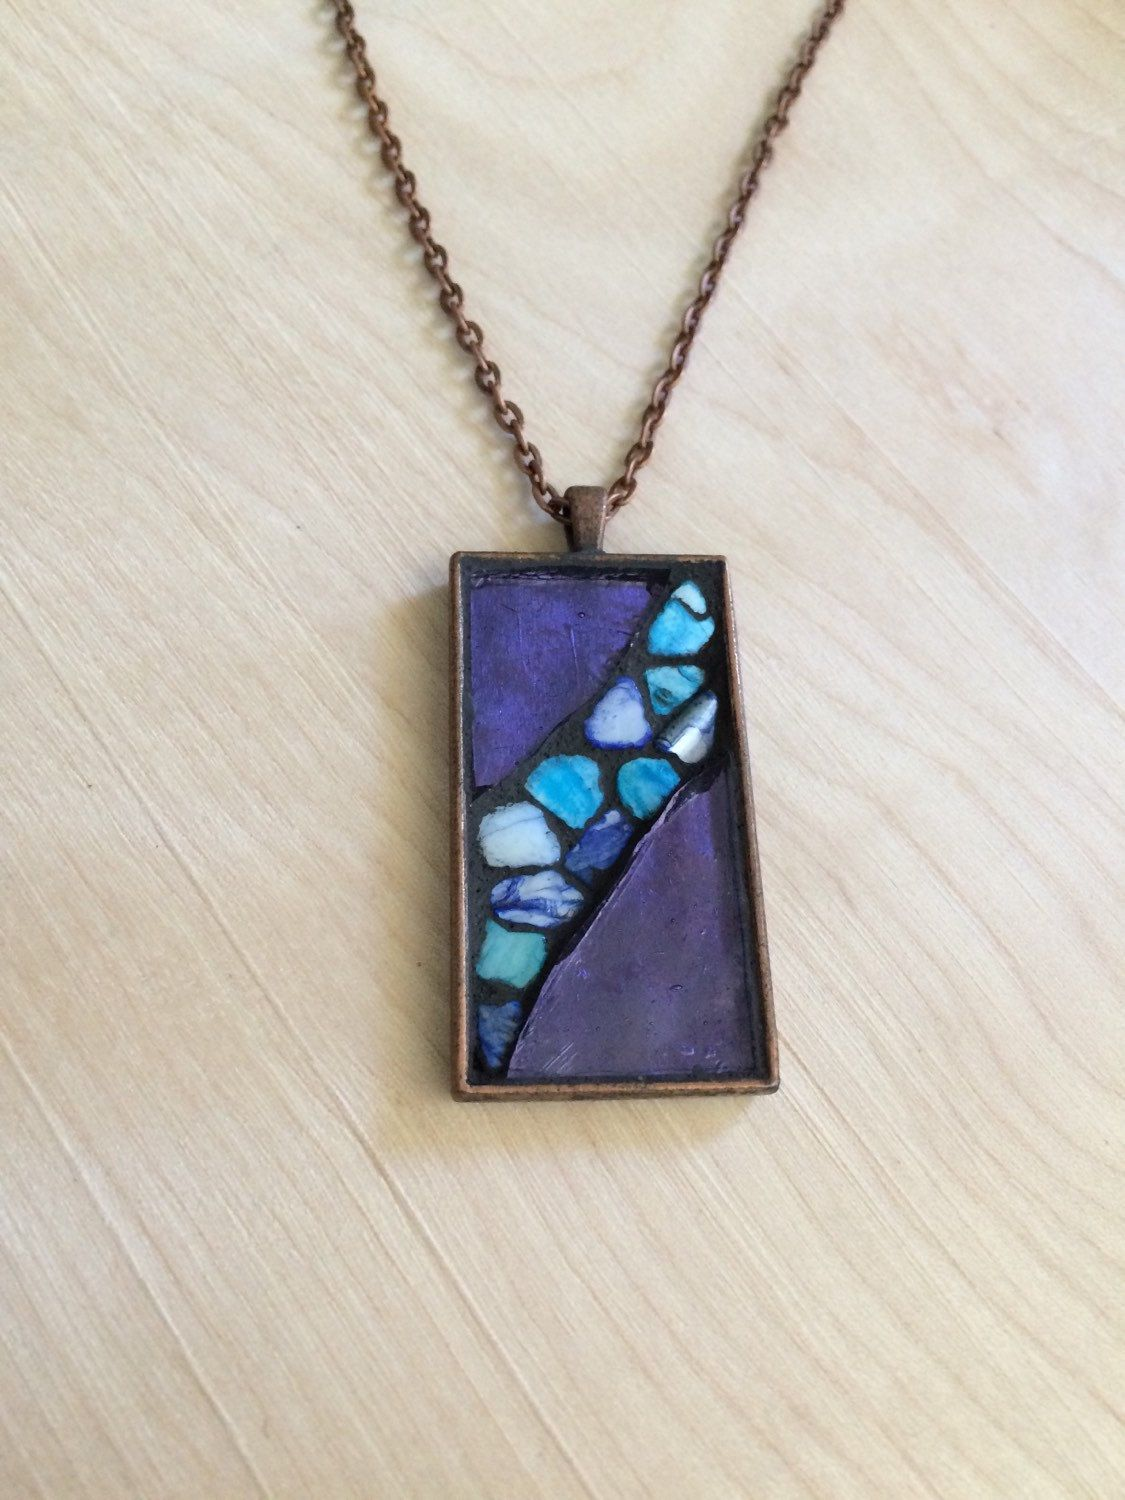 to create using make pendants pendant a spray stones how polish nail colorful floral stained jewelry glass paint projects faux and tile on